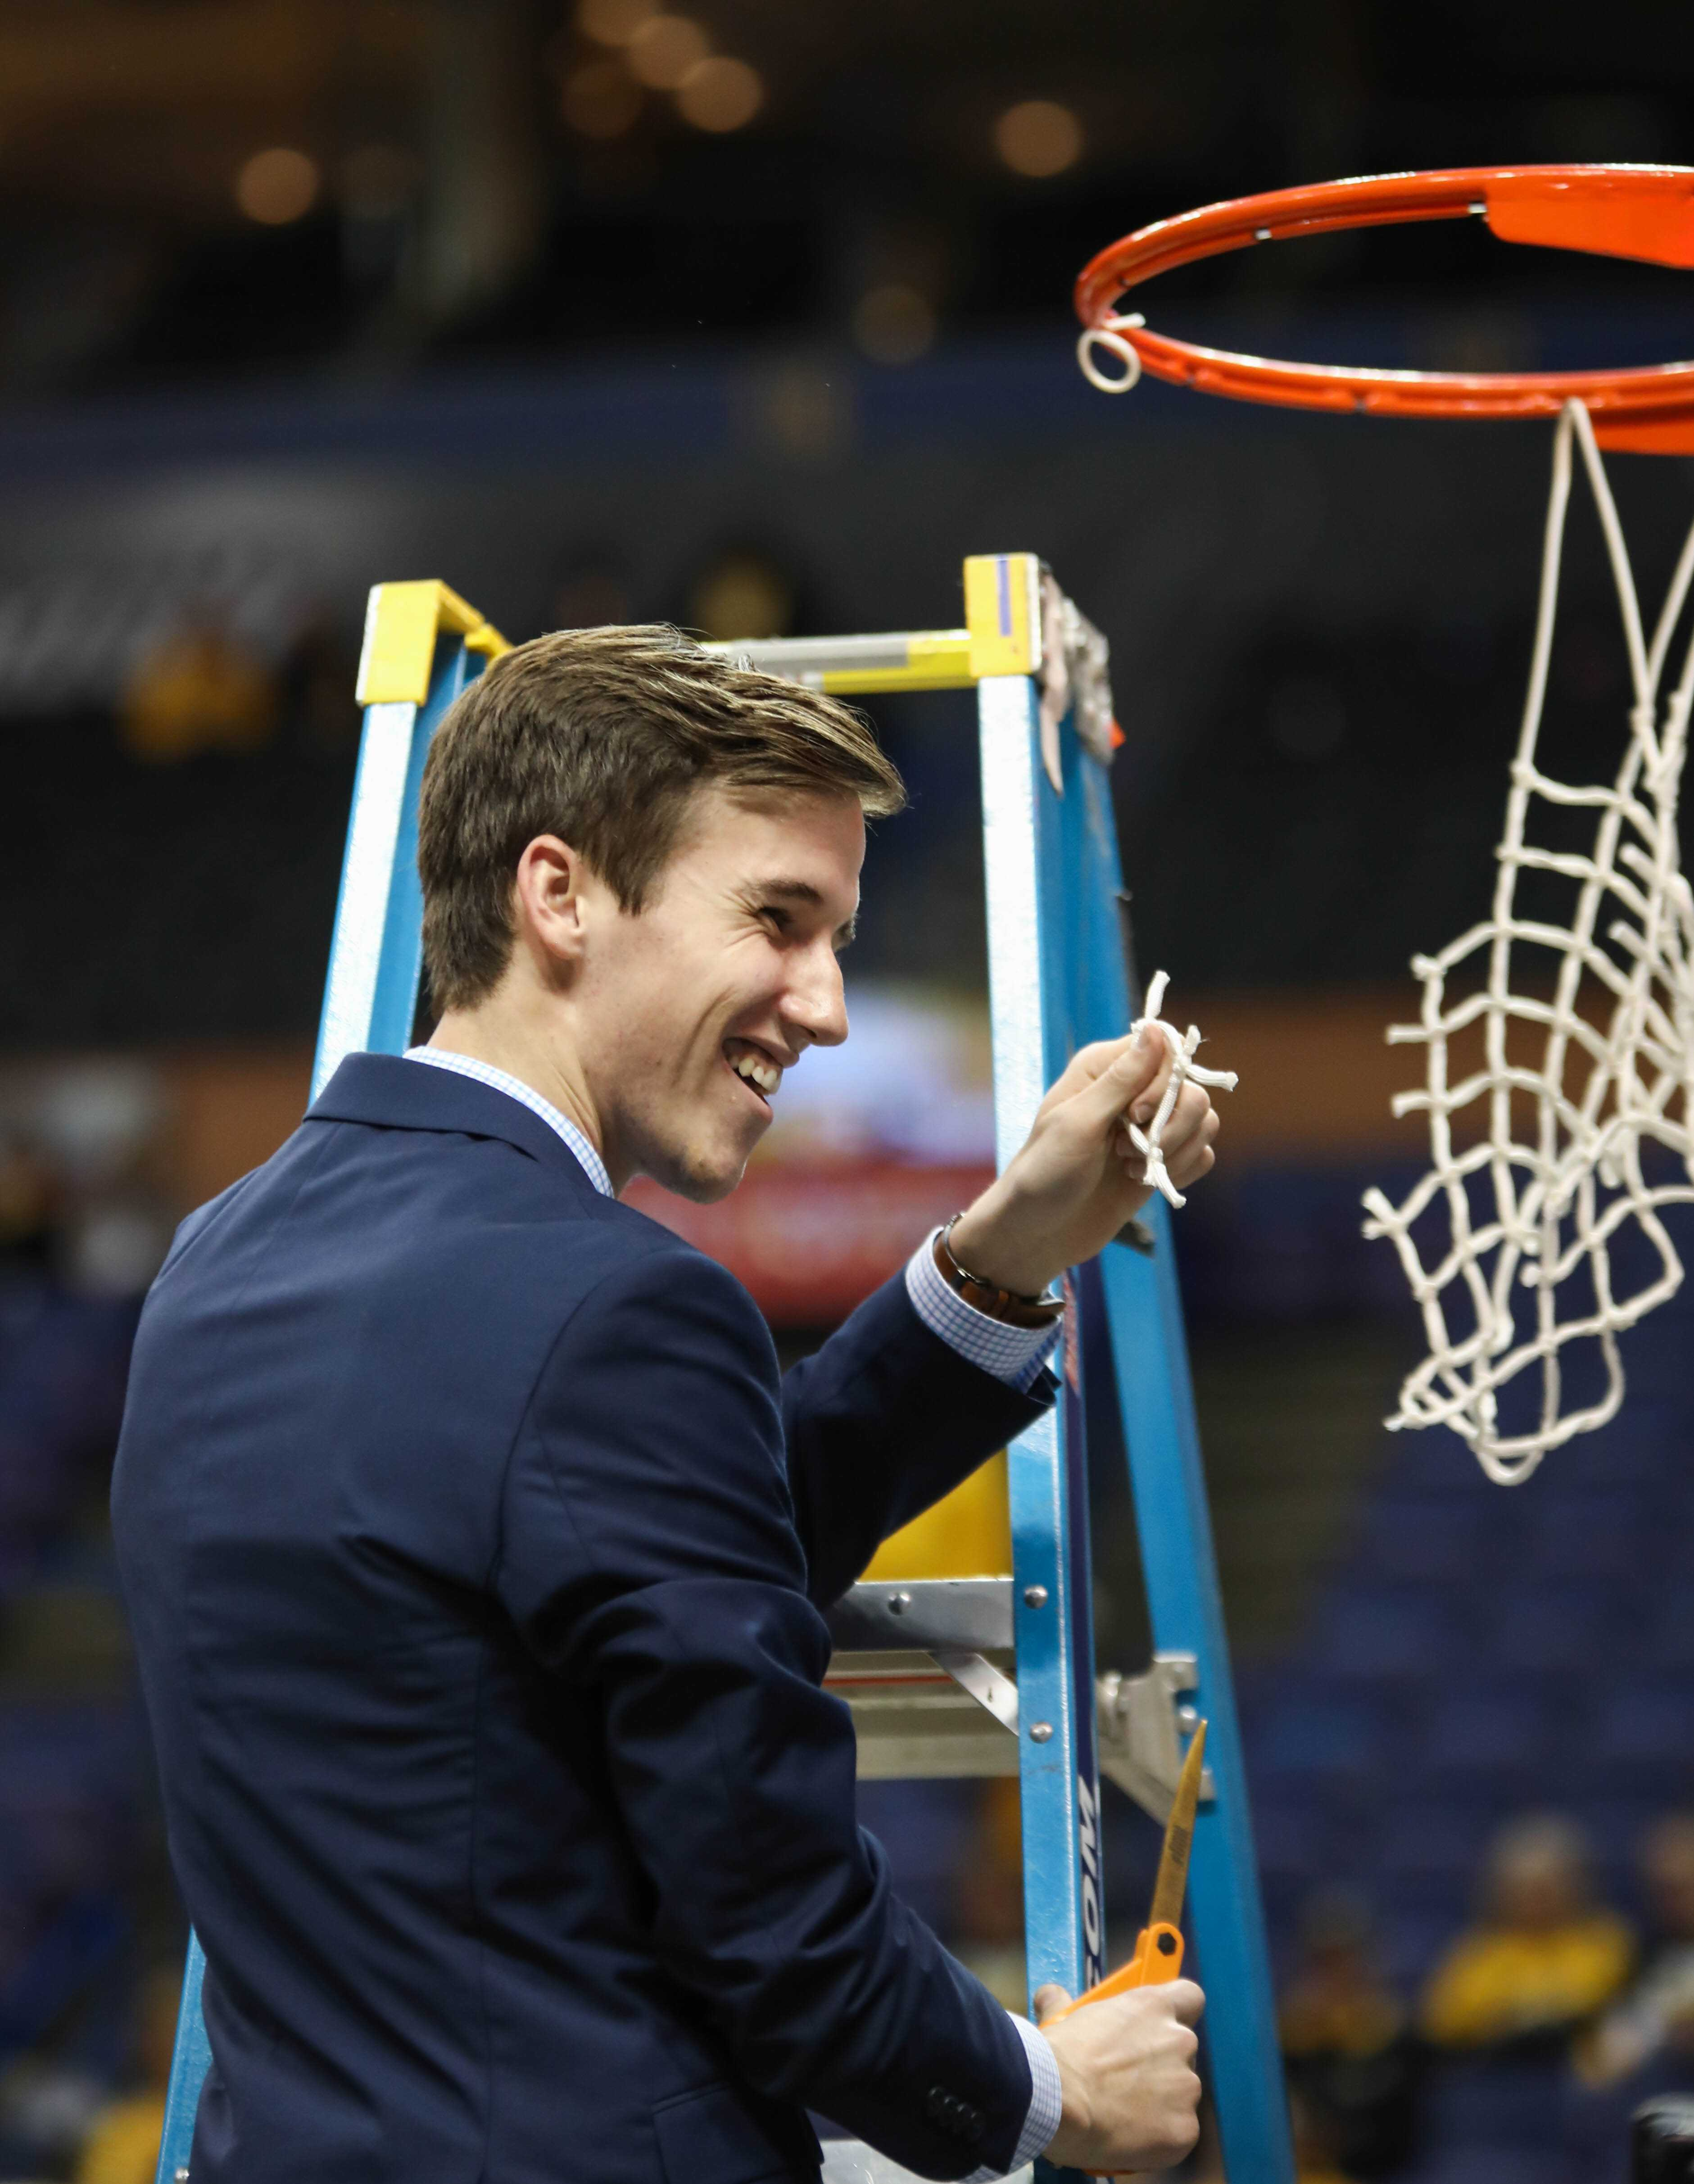 Kellen Marshall holds up his piece of the Missouri Valley Conference Tournament Championship net. Kellen is Gregg Marshall's son, and the head manager for the men's basketball team.